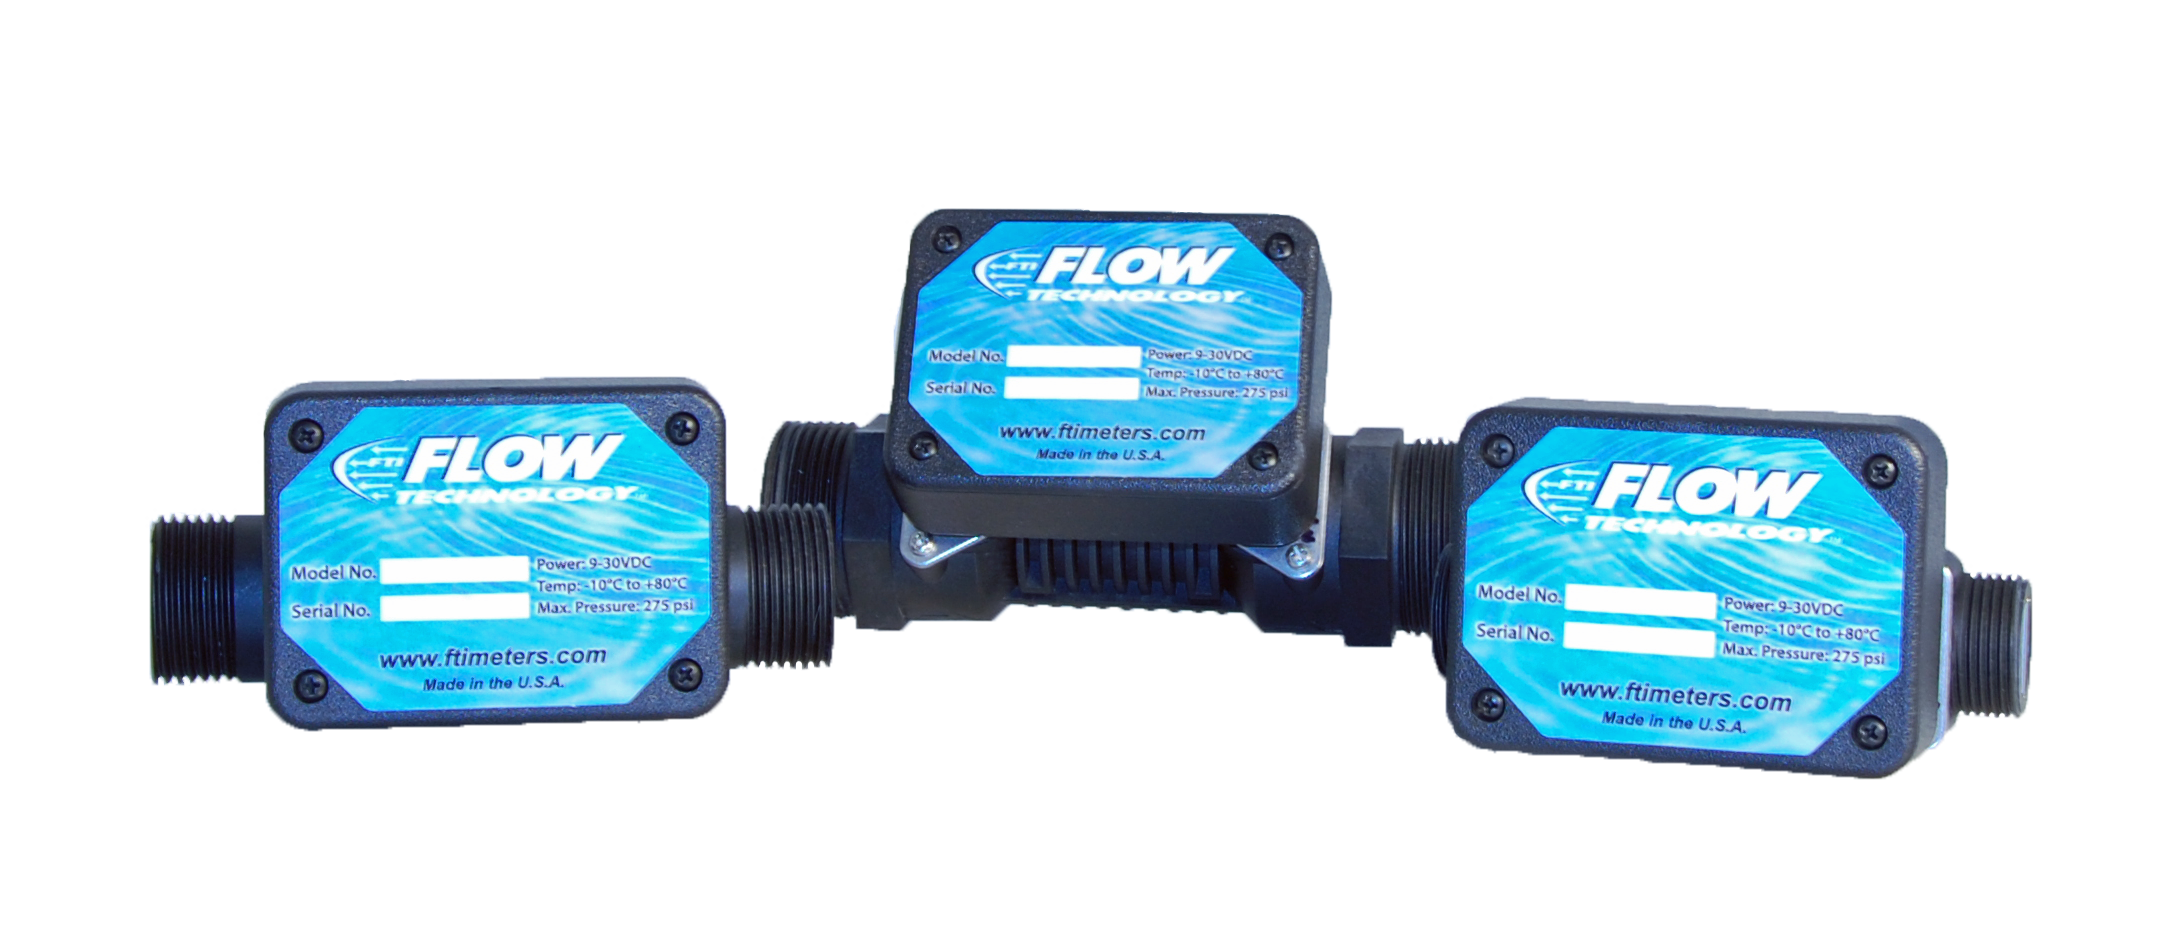 QEM Series of ultrasonic in-line flow meters